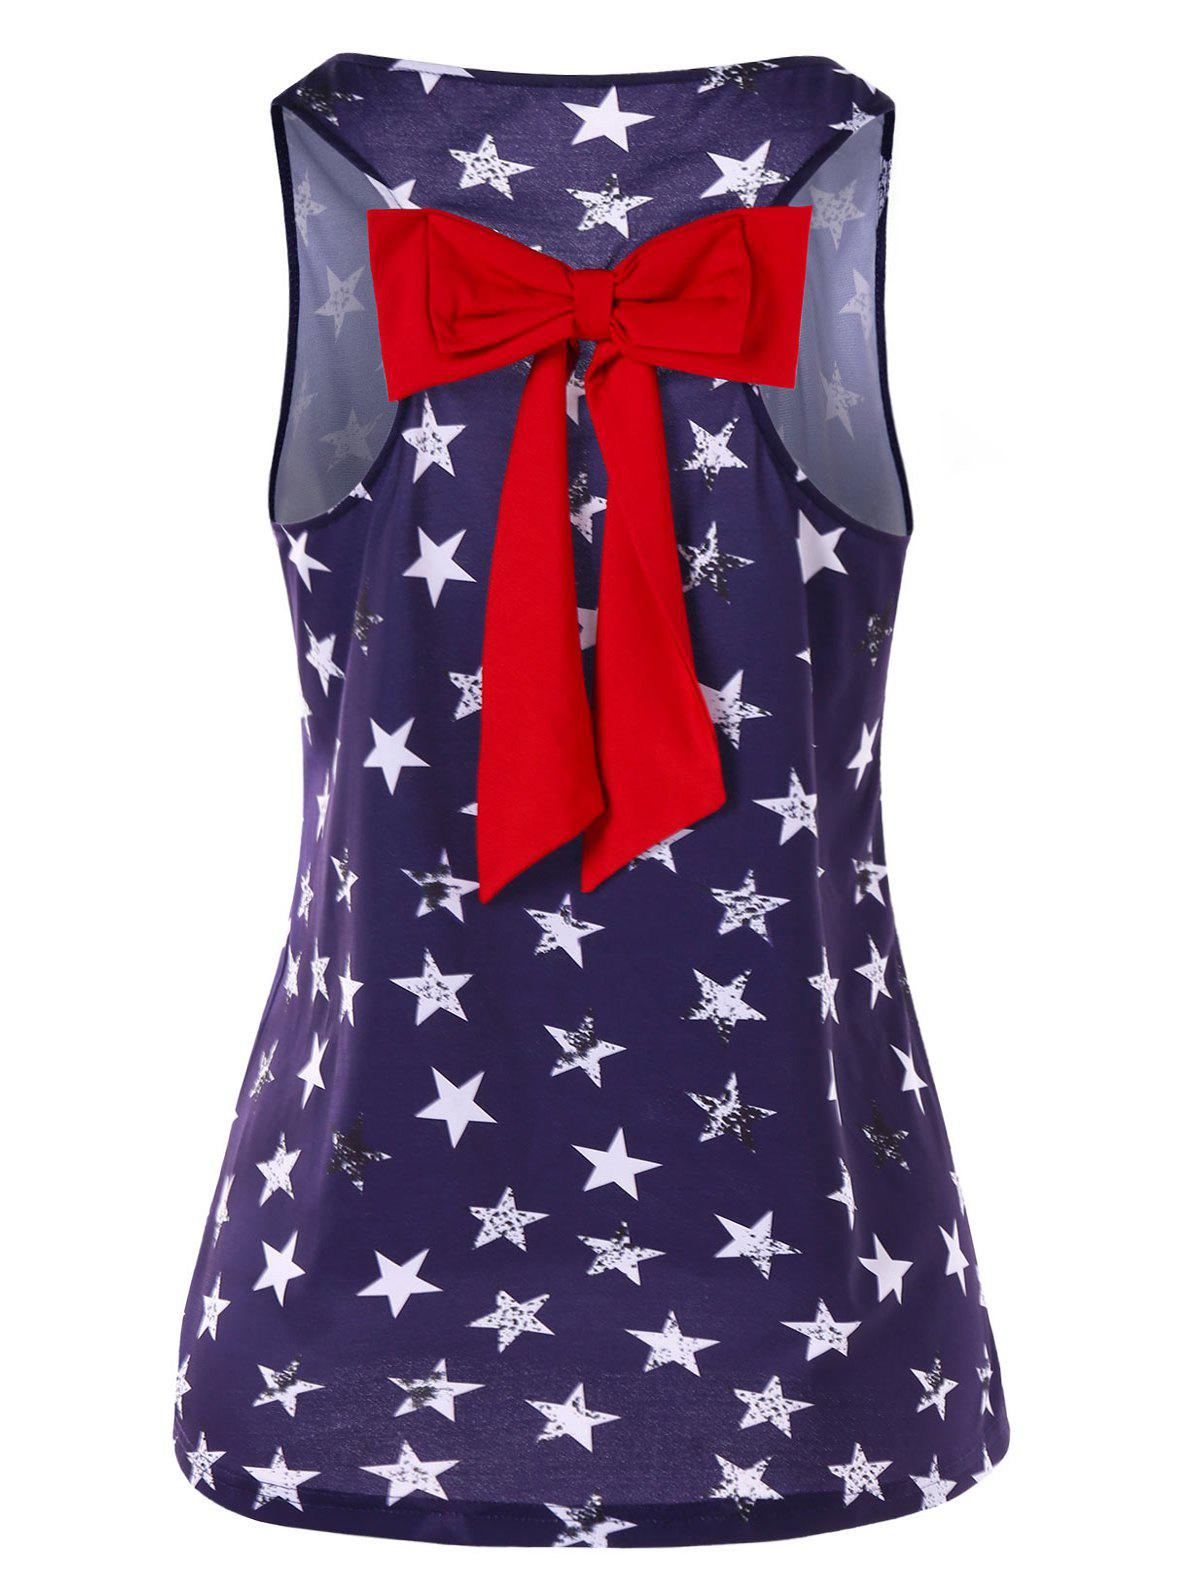 New Stars Print Tank Top with Bowknot